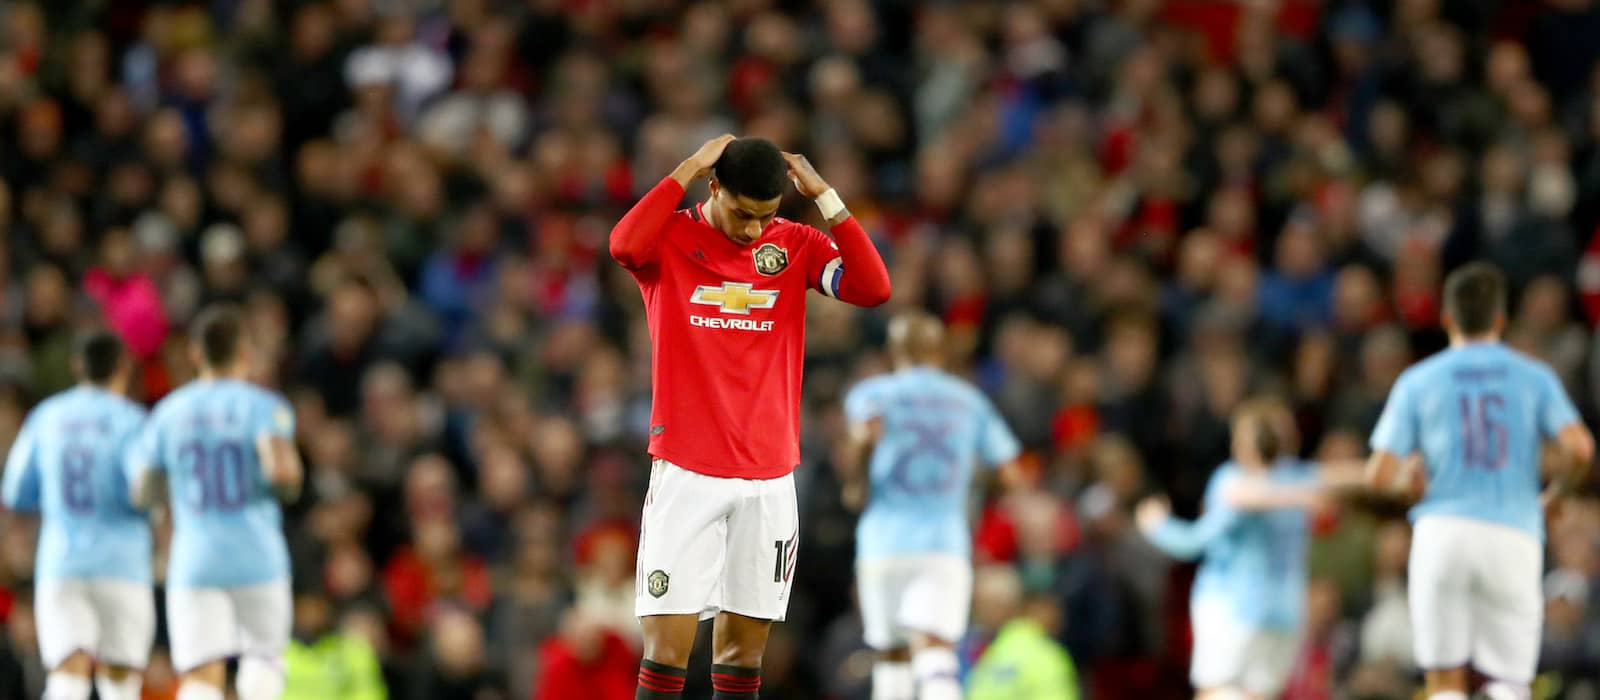 Photo gallery: Manchester United 1-3 Manchester City